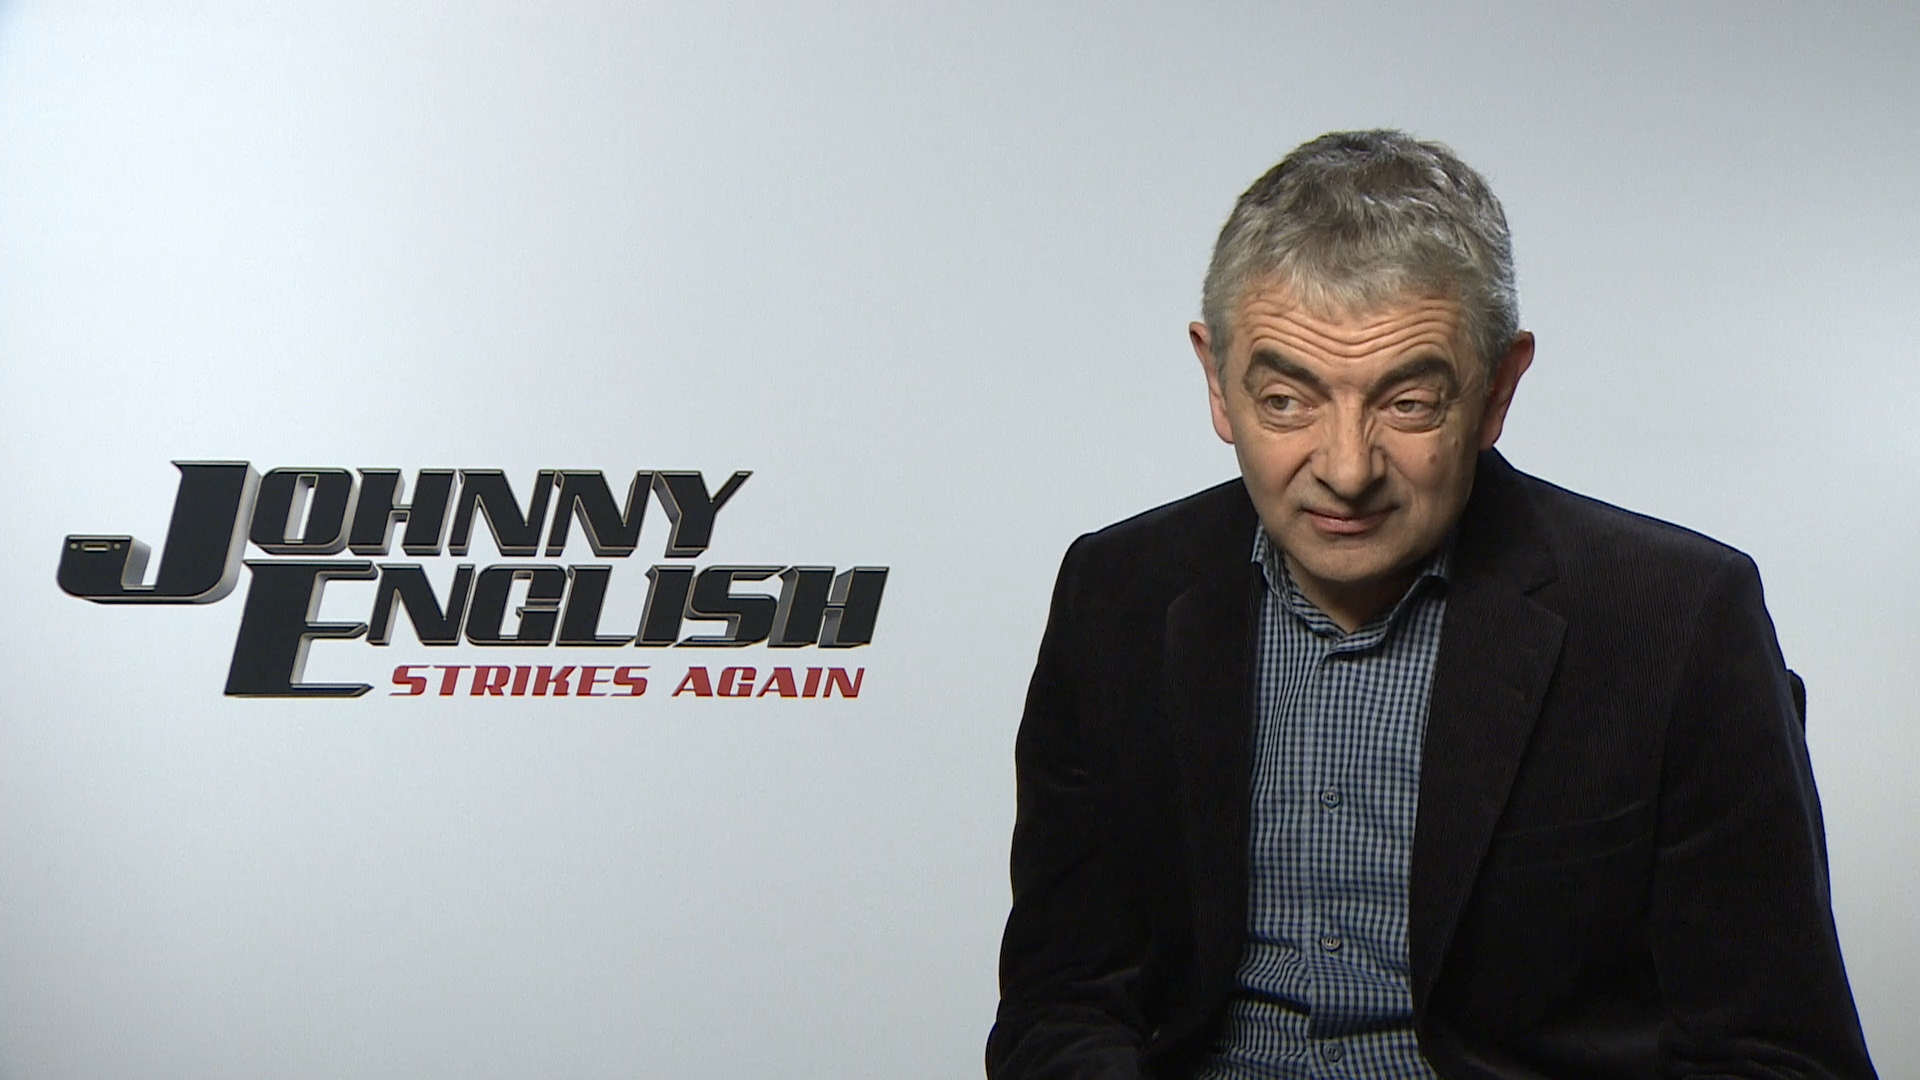 Rowan Atkinson returns to the big screen in Johnny English Strikes Again